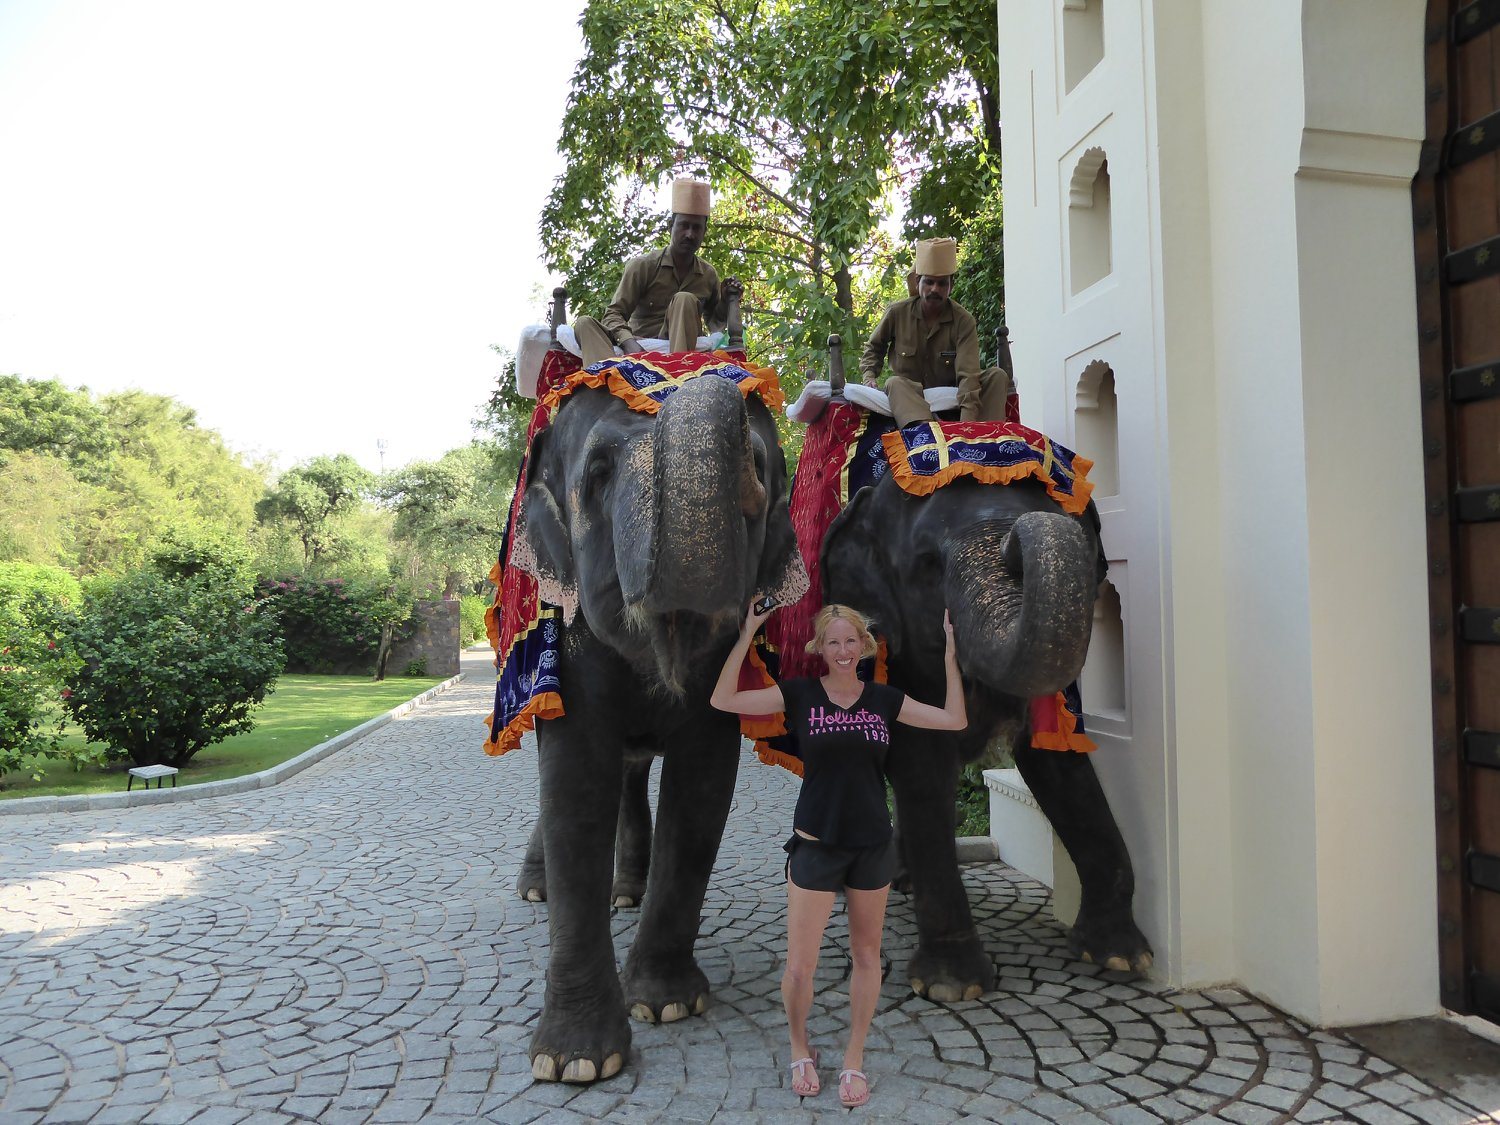 Rachelle Ginsberg standing in front of two elephant at India